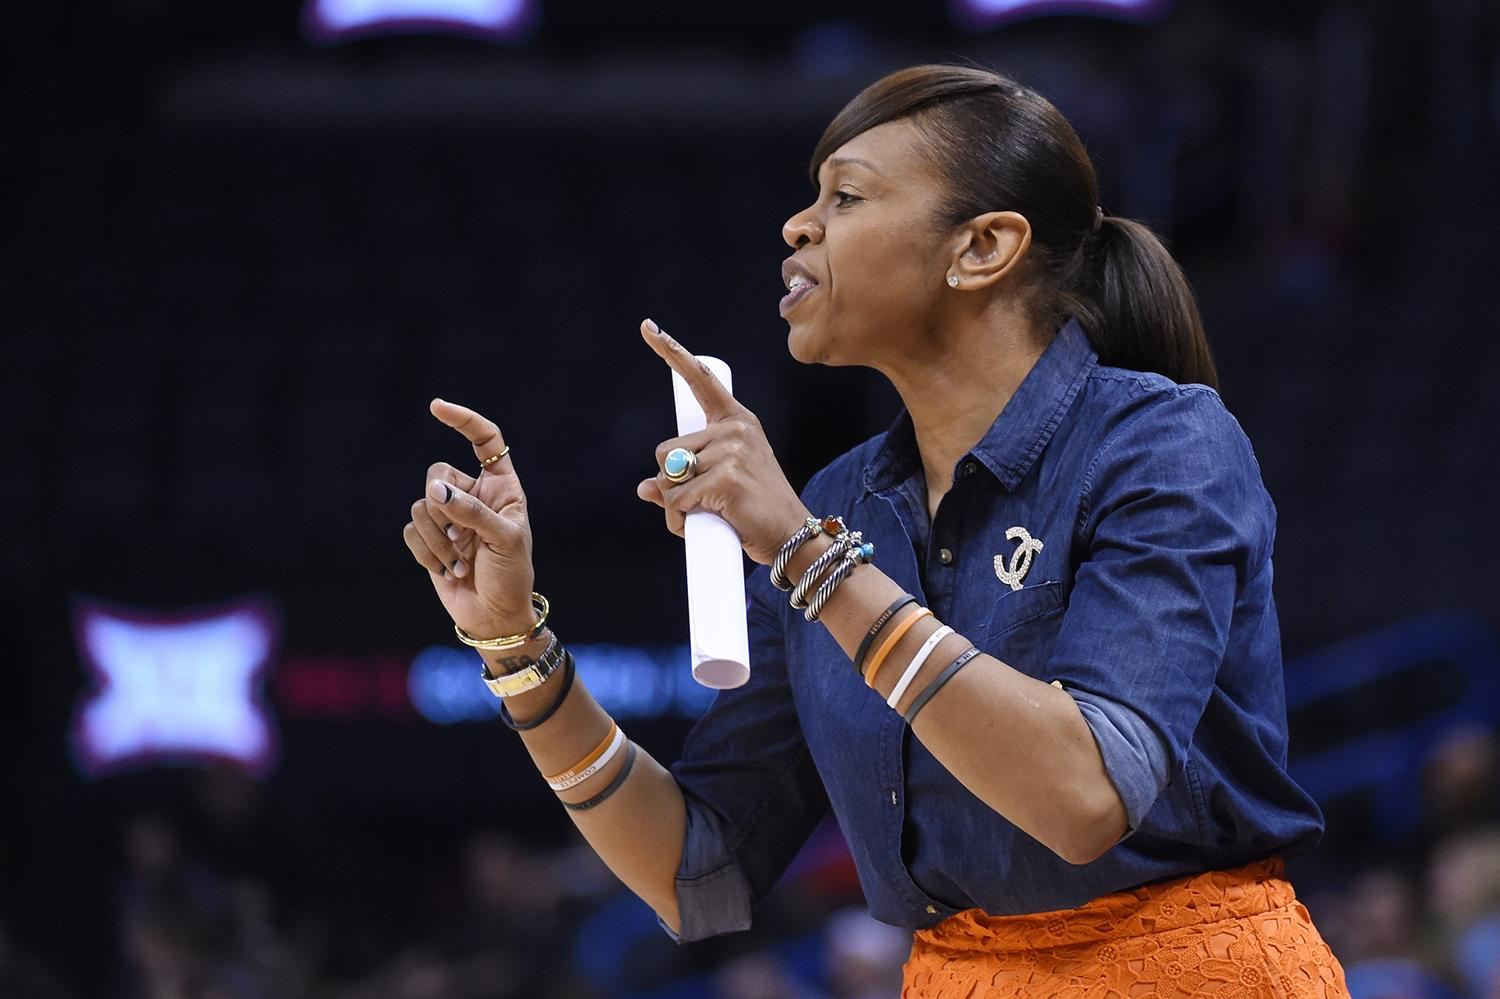 Tina Thompson spent the past three seasons on the staff of the University of Texas women's basketball team.